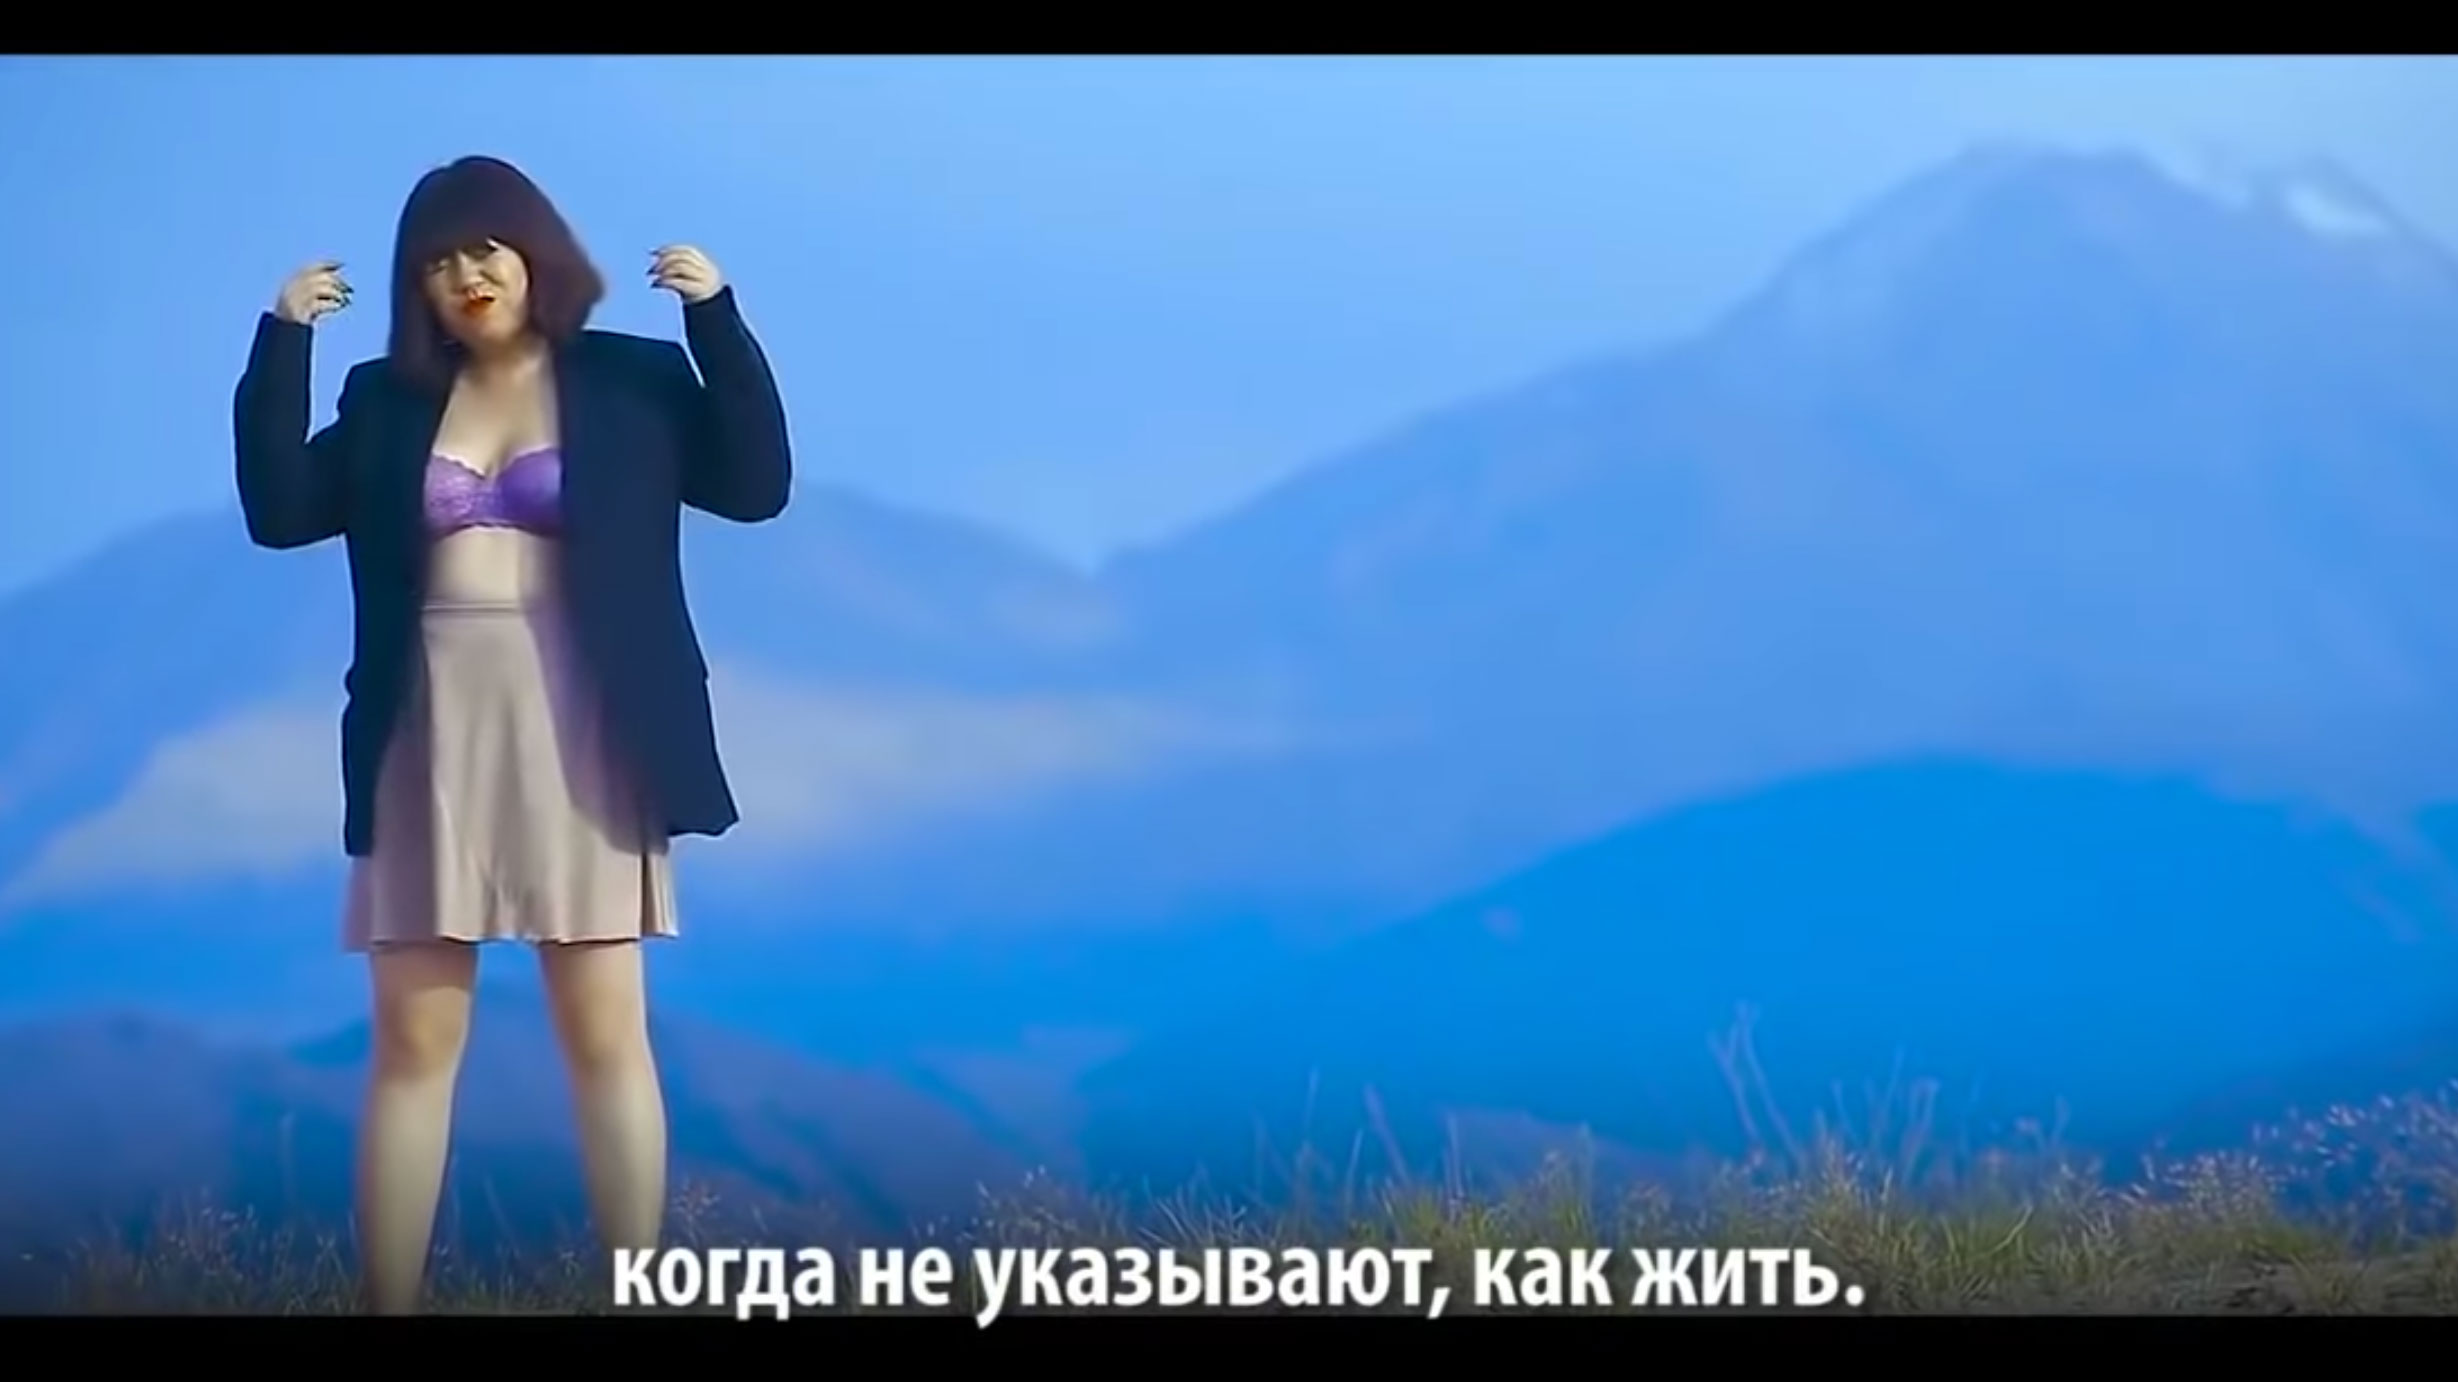 This Kyrgyz singer is getting death threats after releasing a music video and a song about women's rights